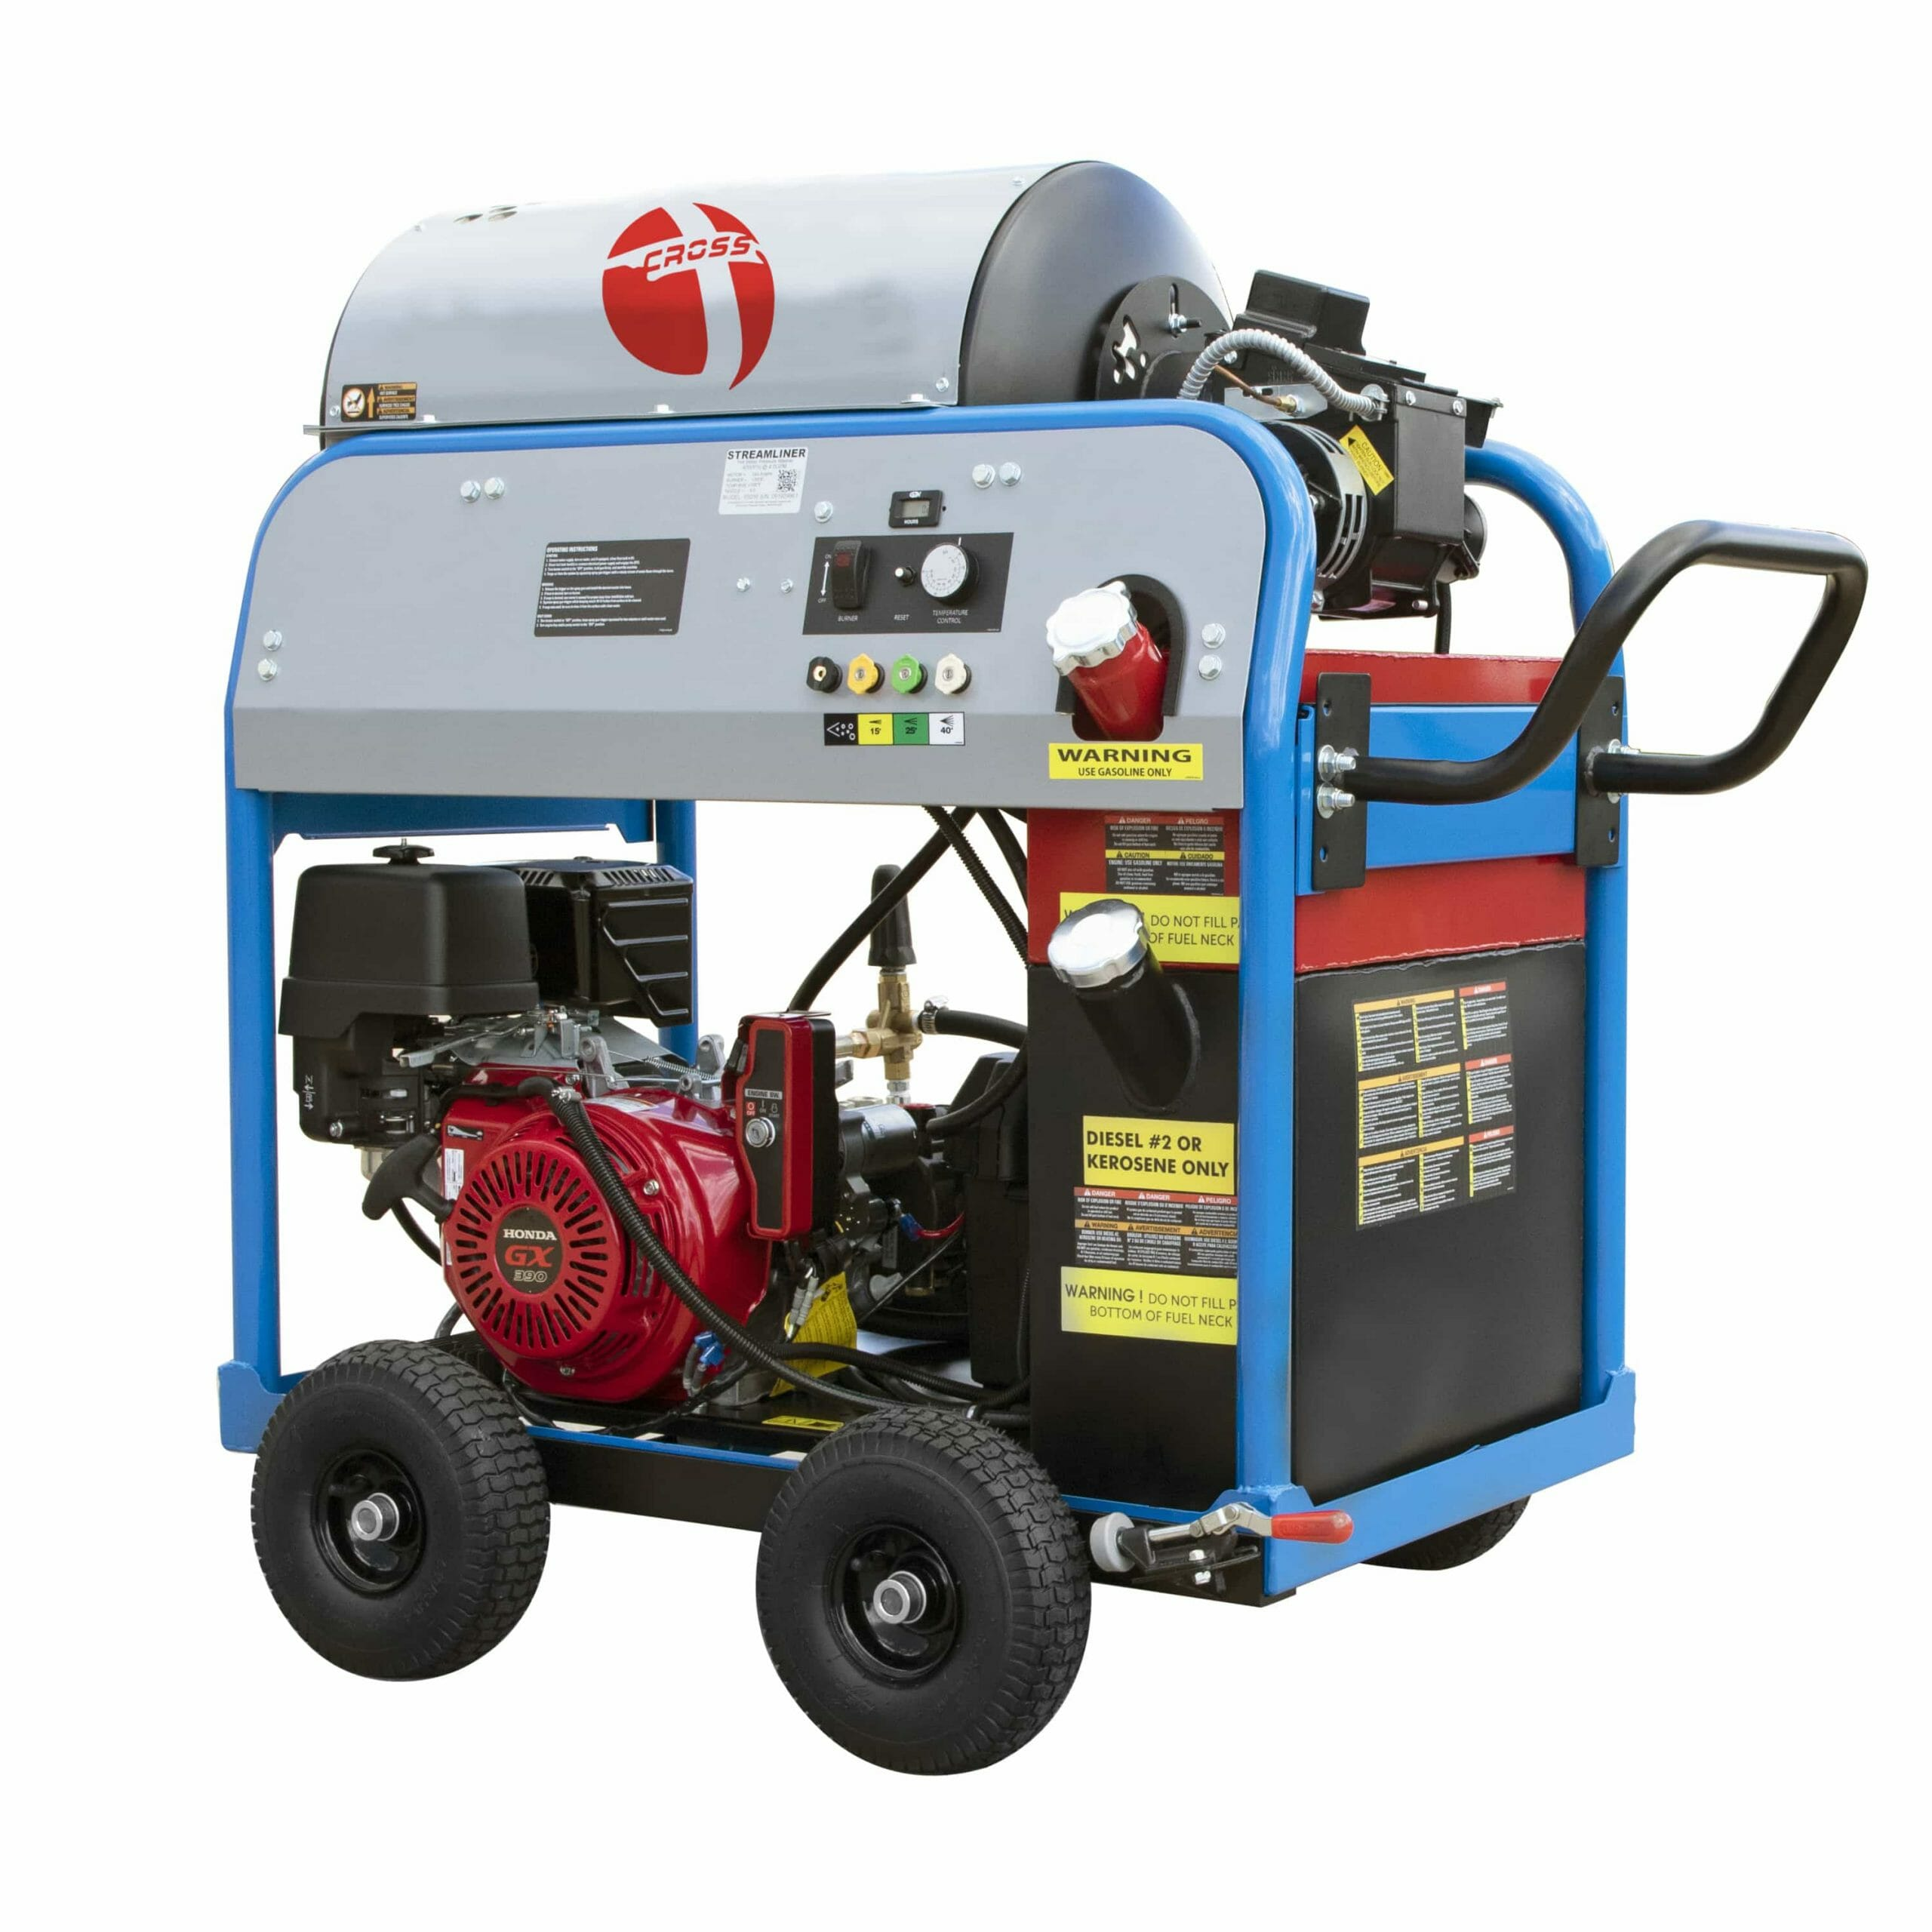 Mobile Compact Hot Water Pressure Washer